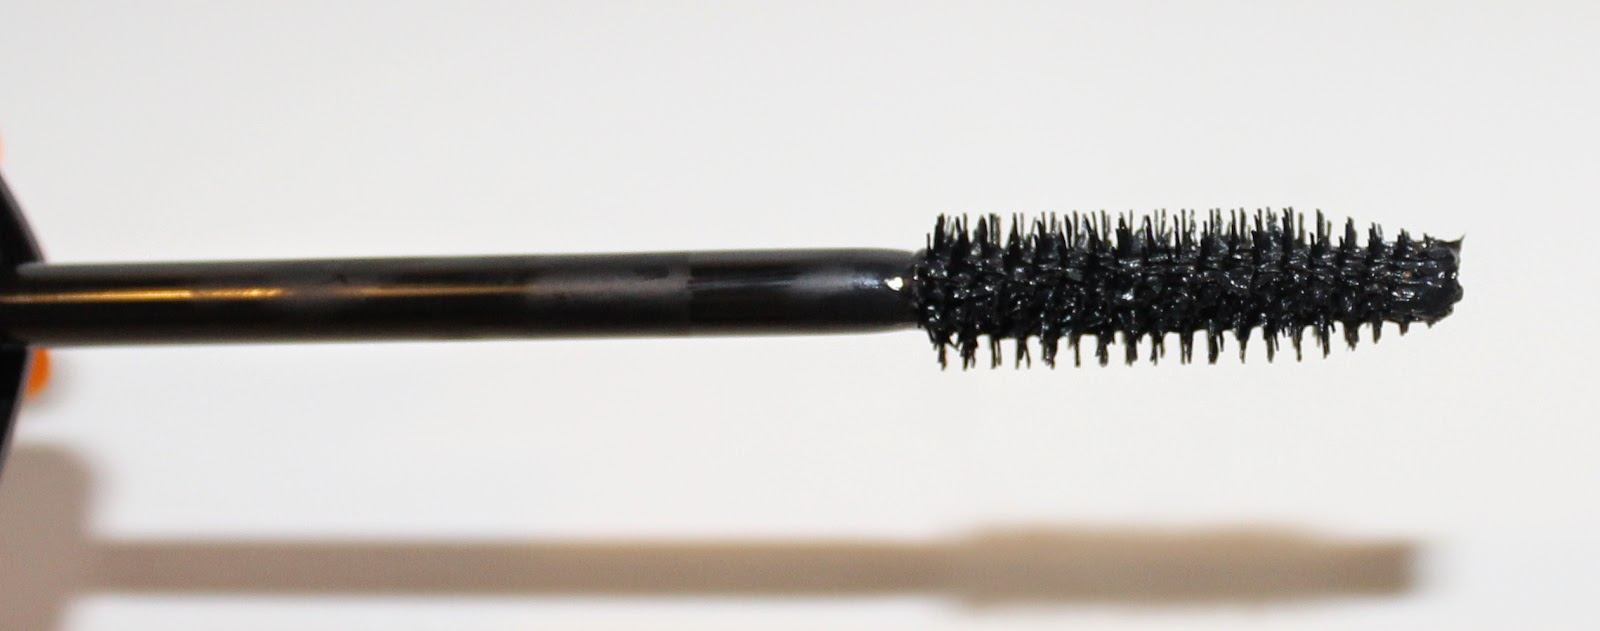 ARTDECO All in One Mascara Wand